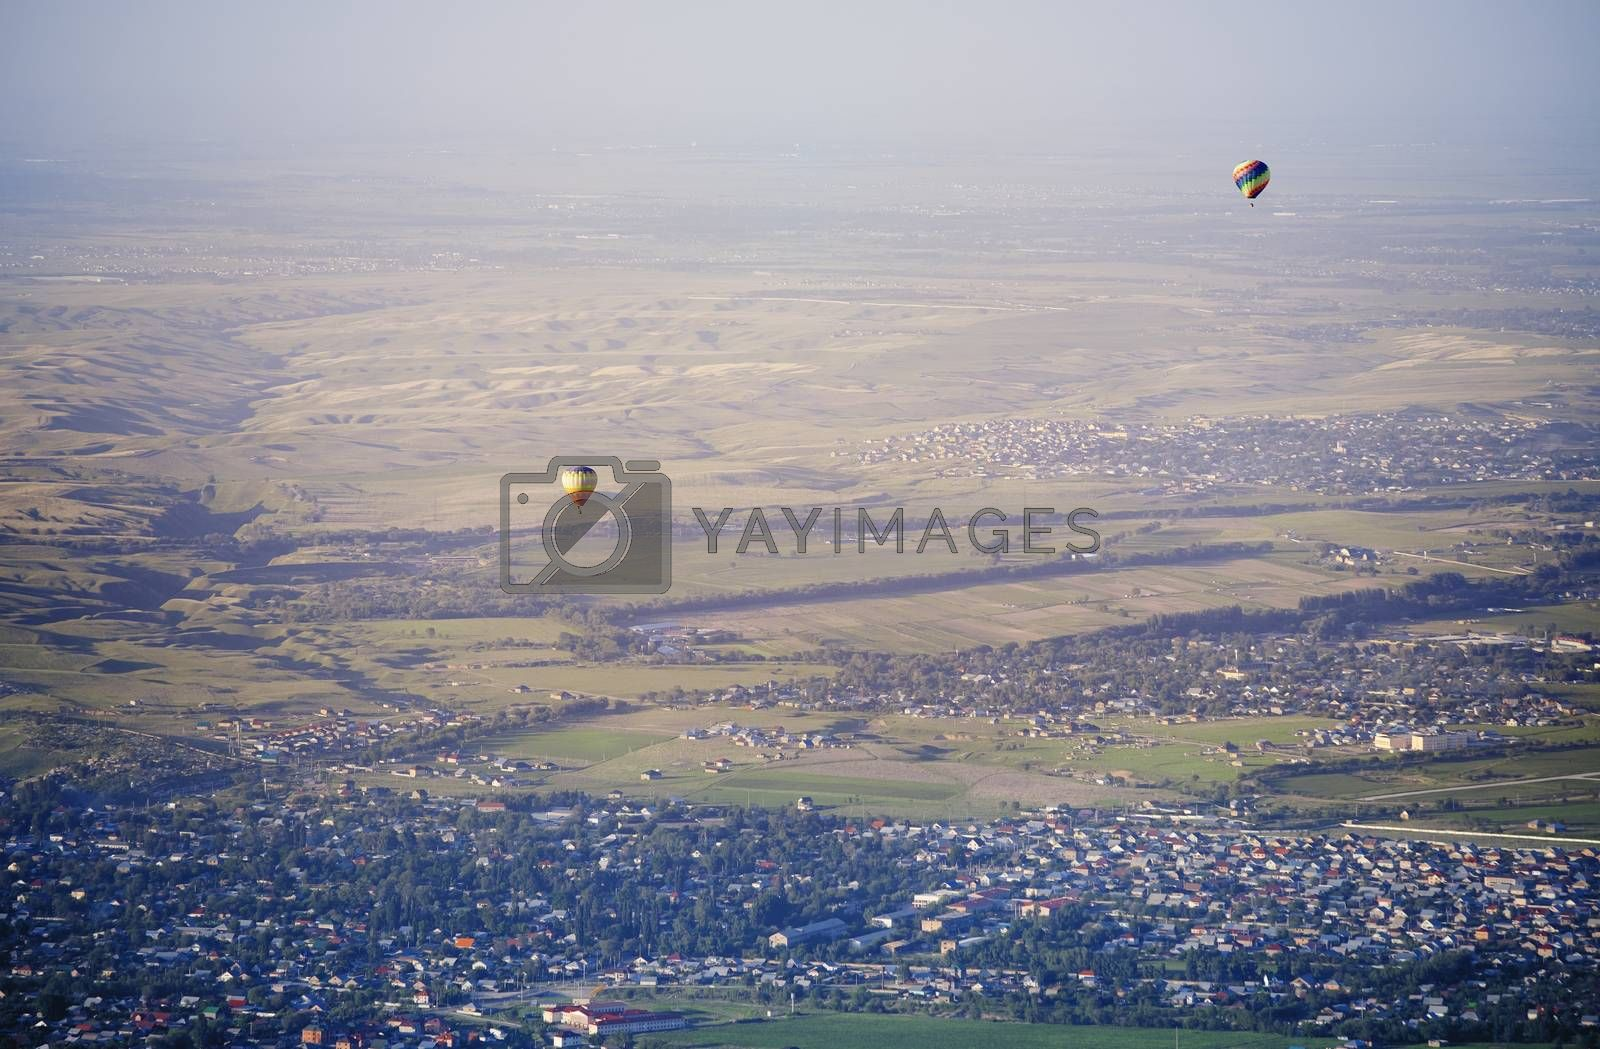 Hot air balloons above the green field and villages